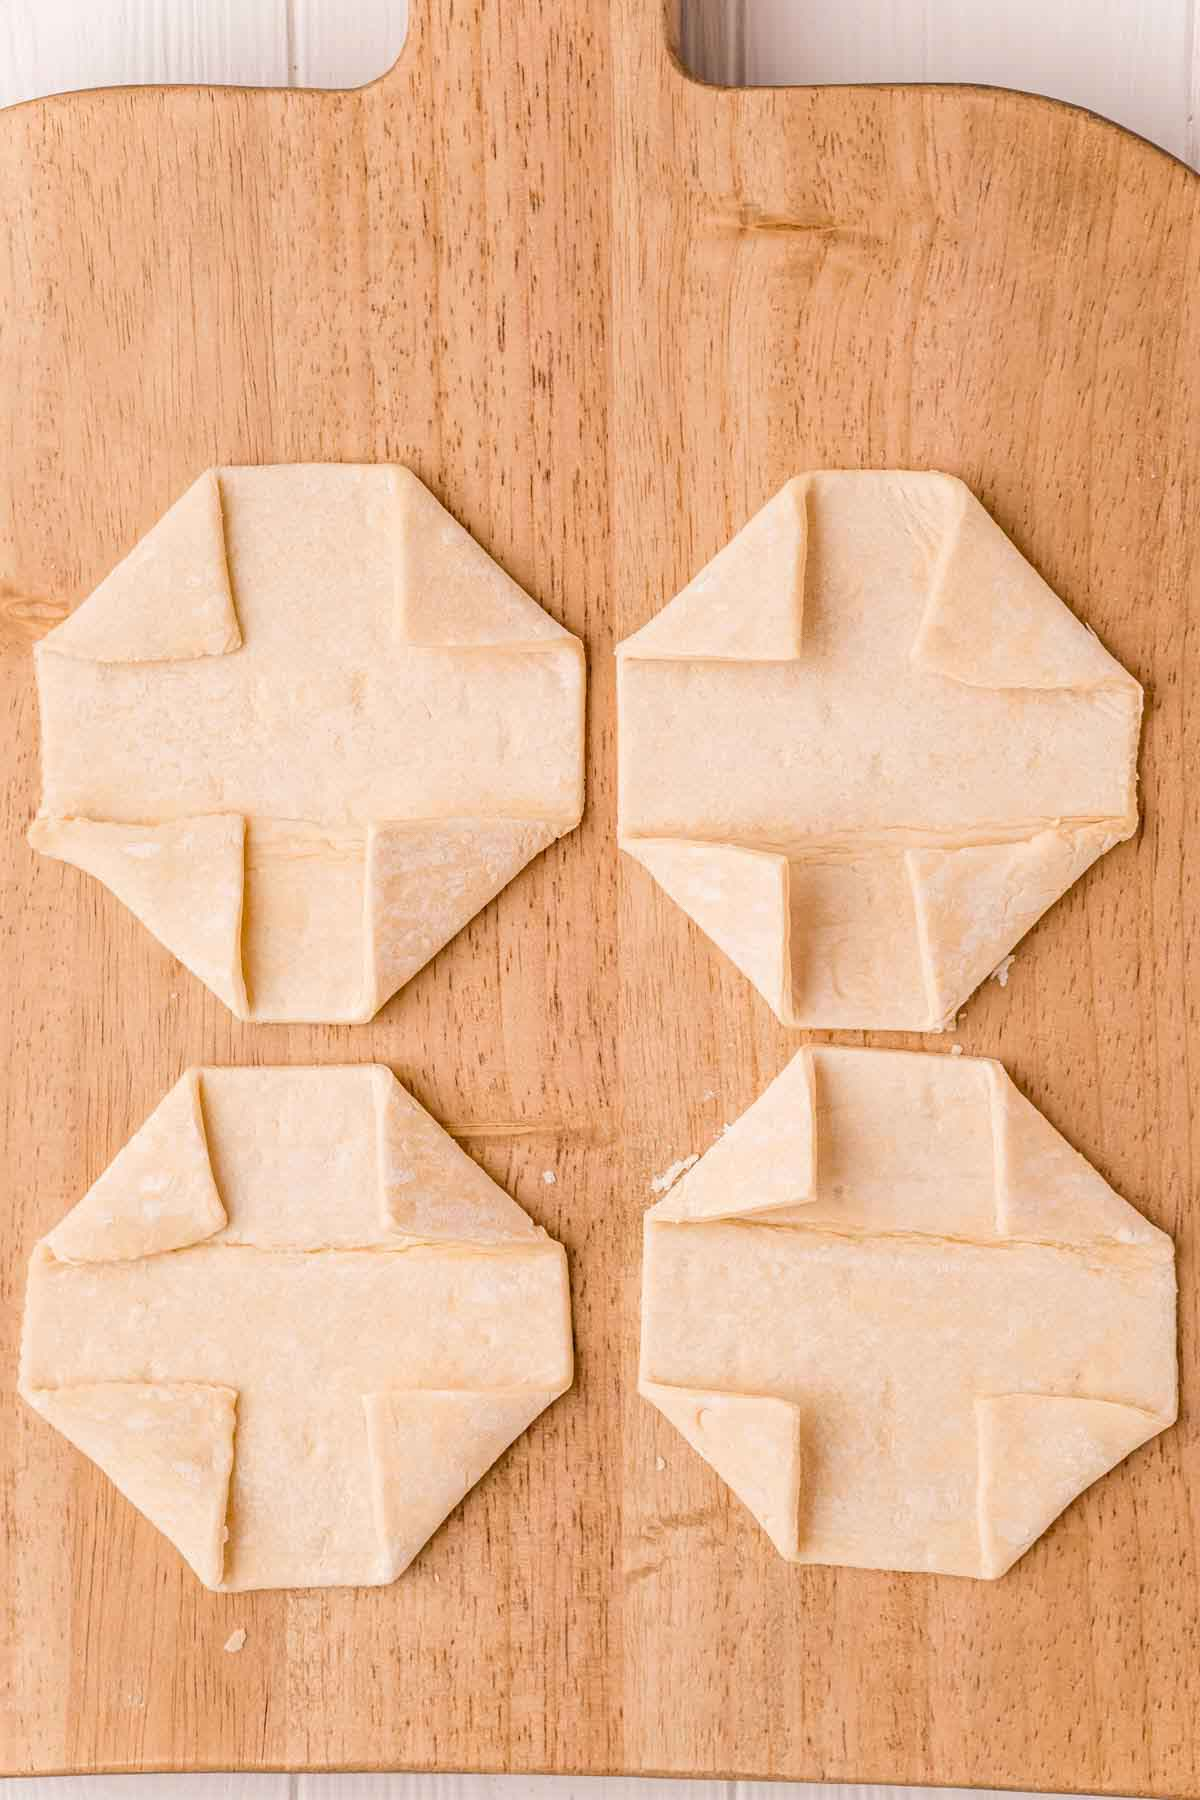 Four puff pastries on a cutting board